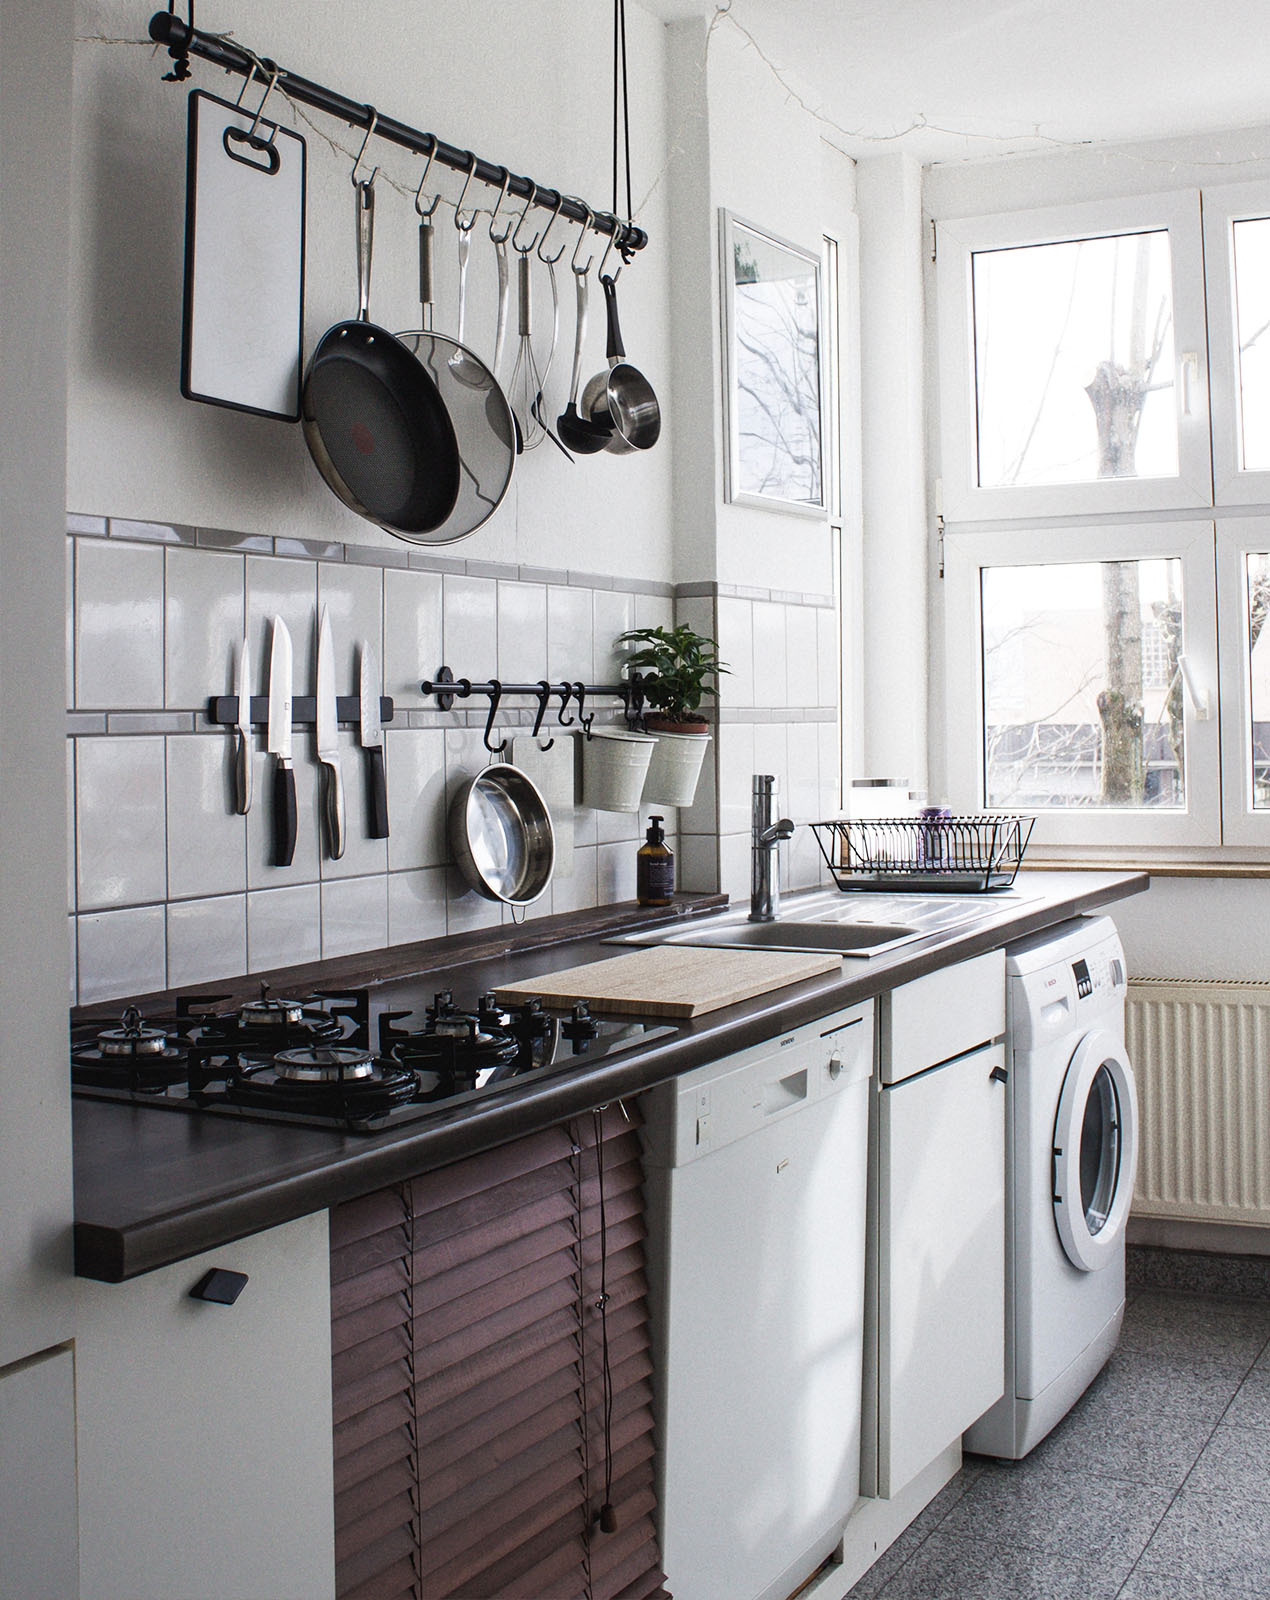 kitchen plumbing and gas appliances